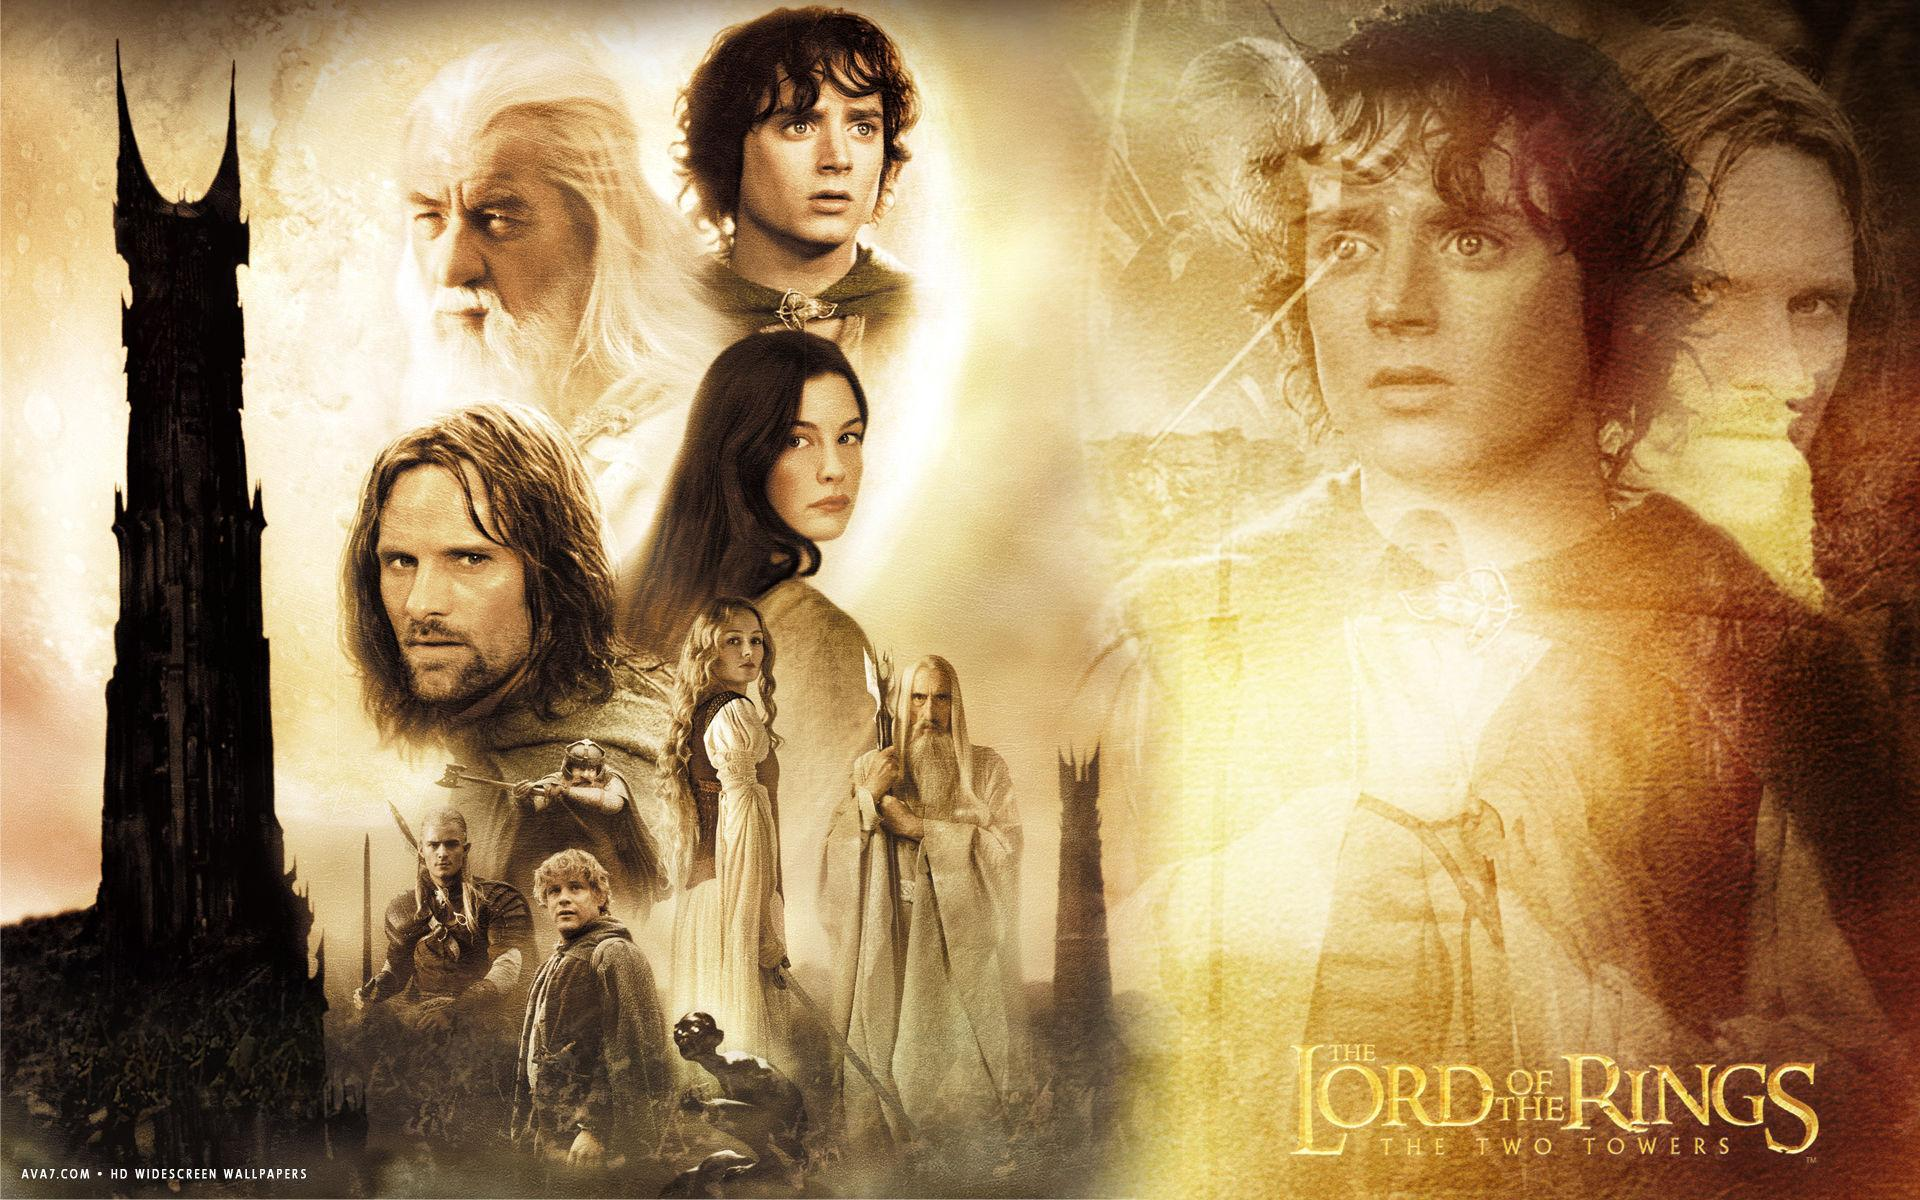 The Lord of the Rings: The Fellowship of the Ring Wallpapers 14